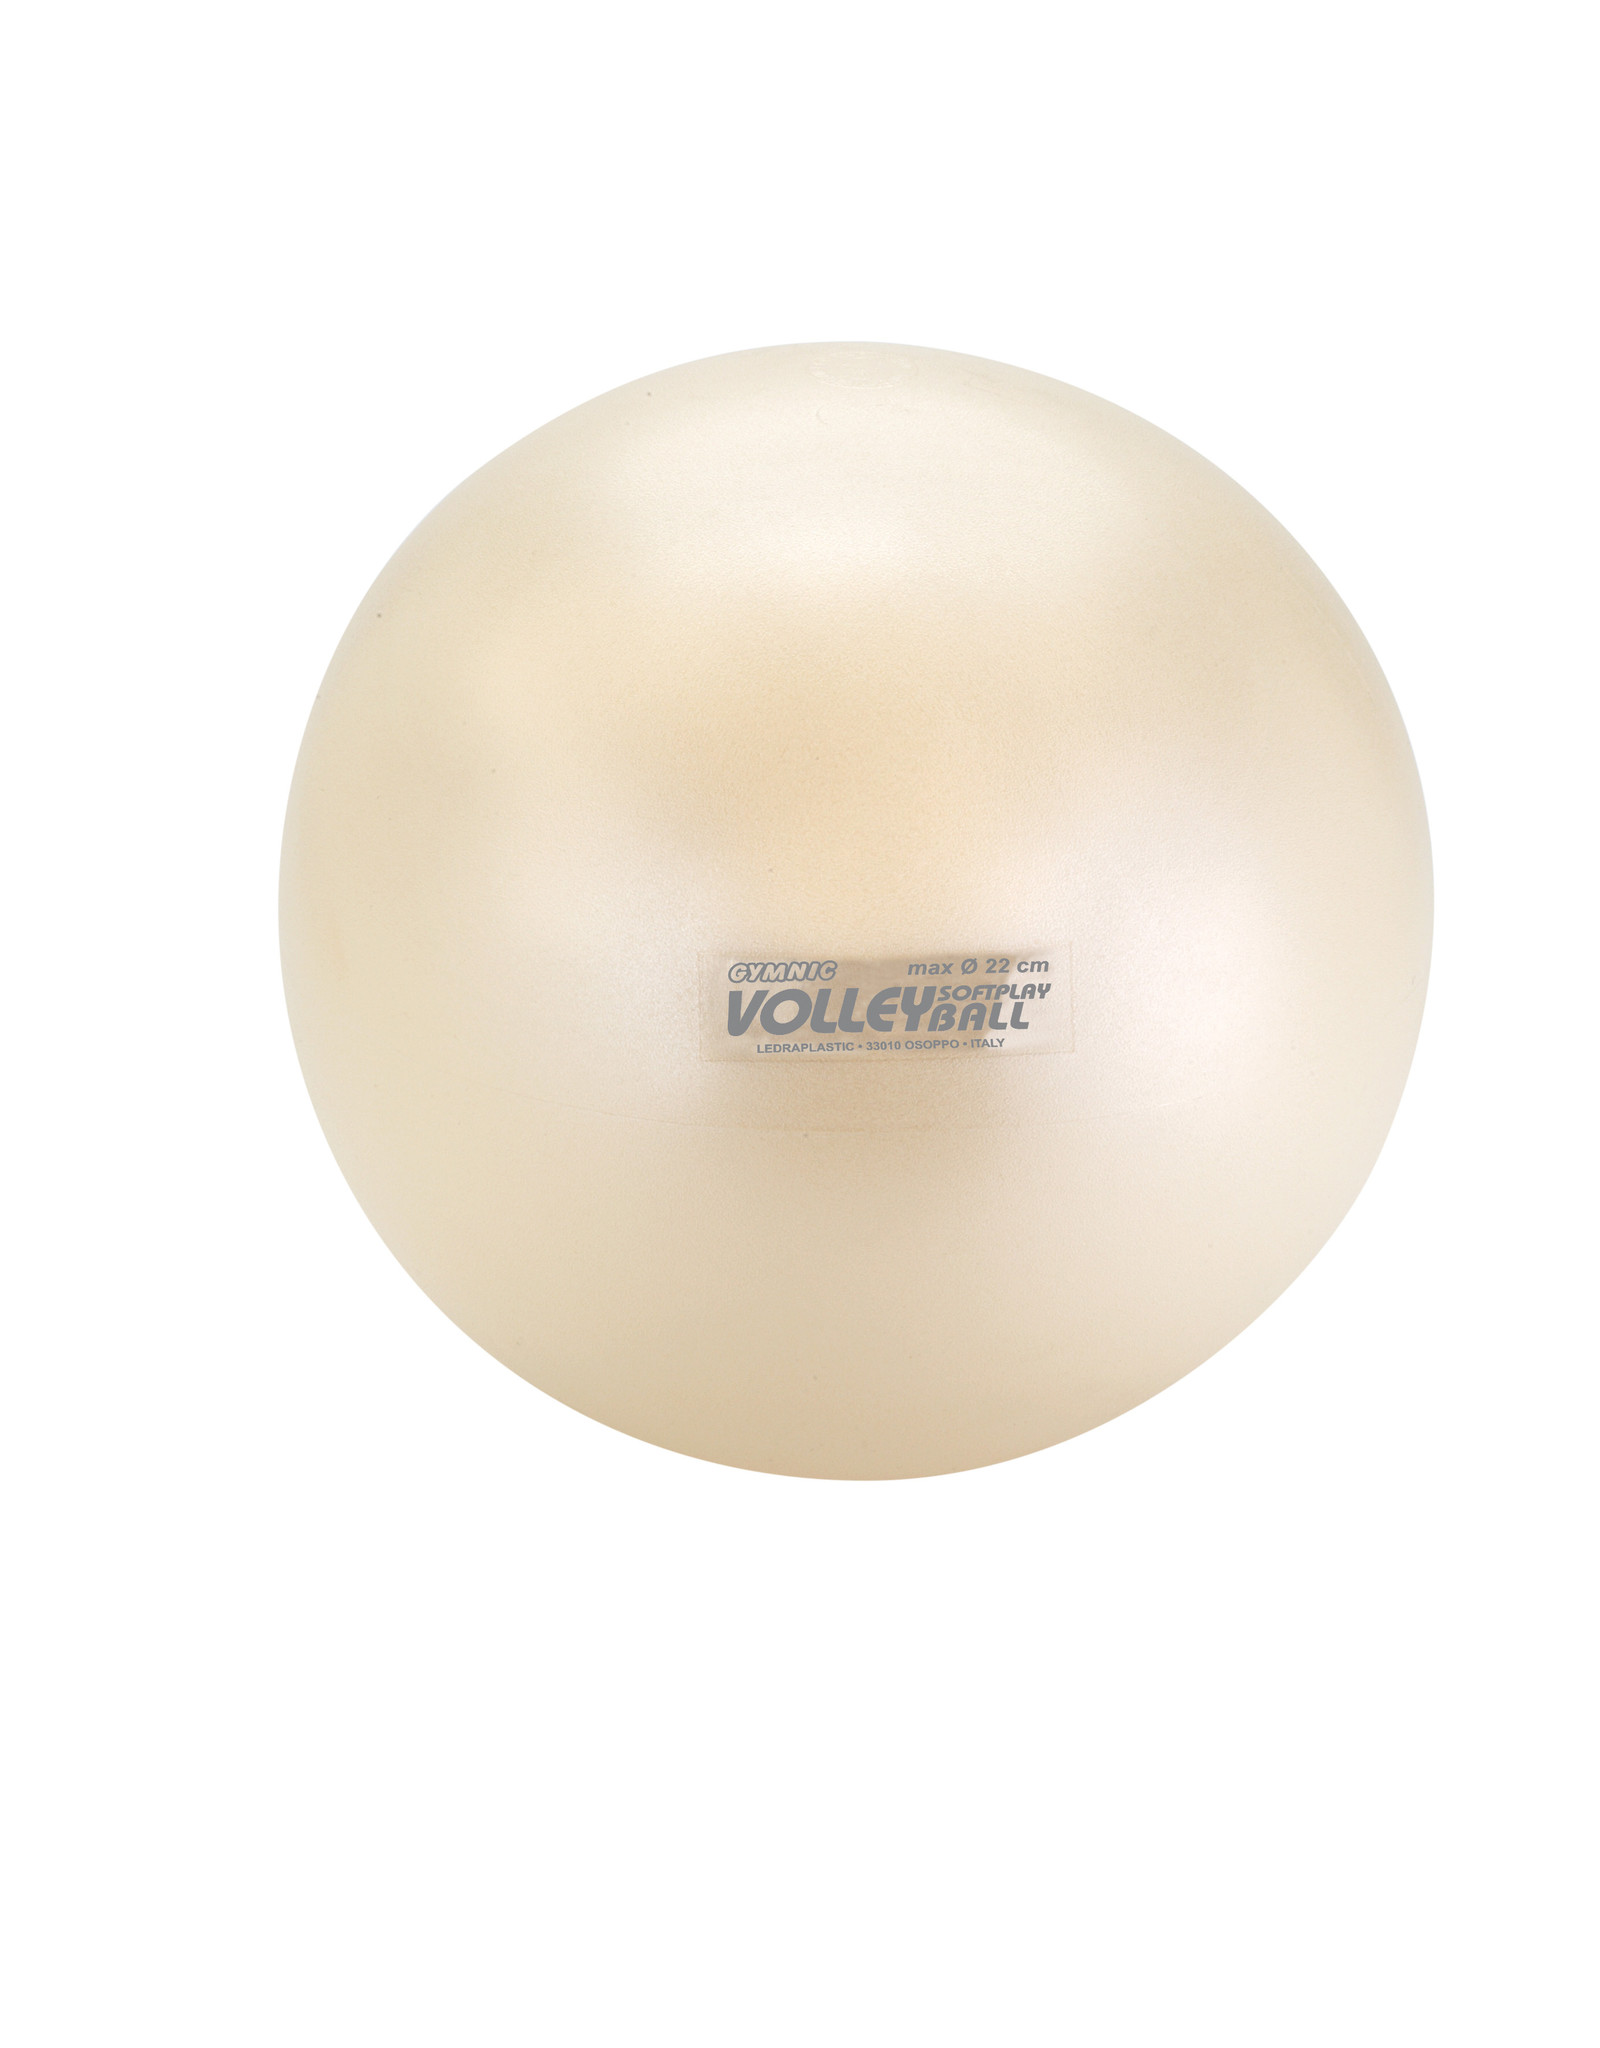 Gymnic Softplay Volley / WT / deflated